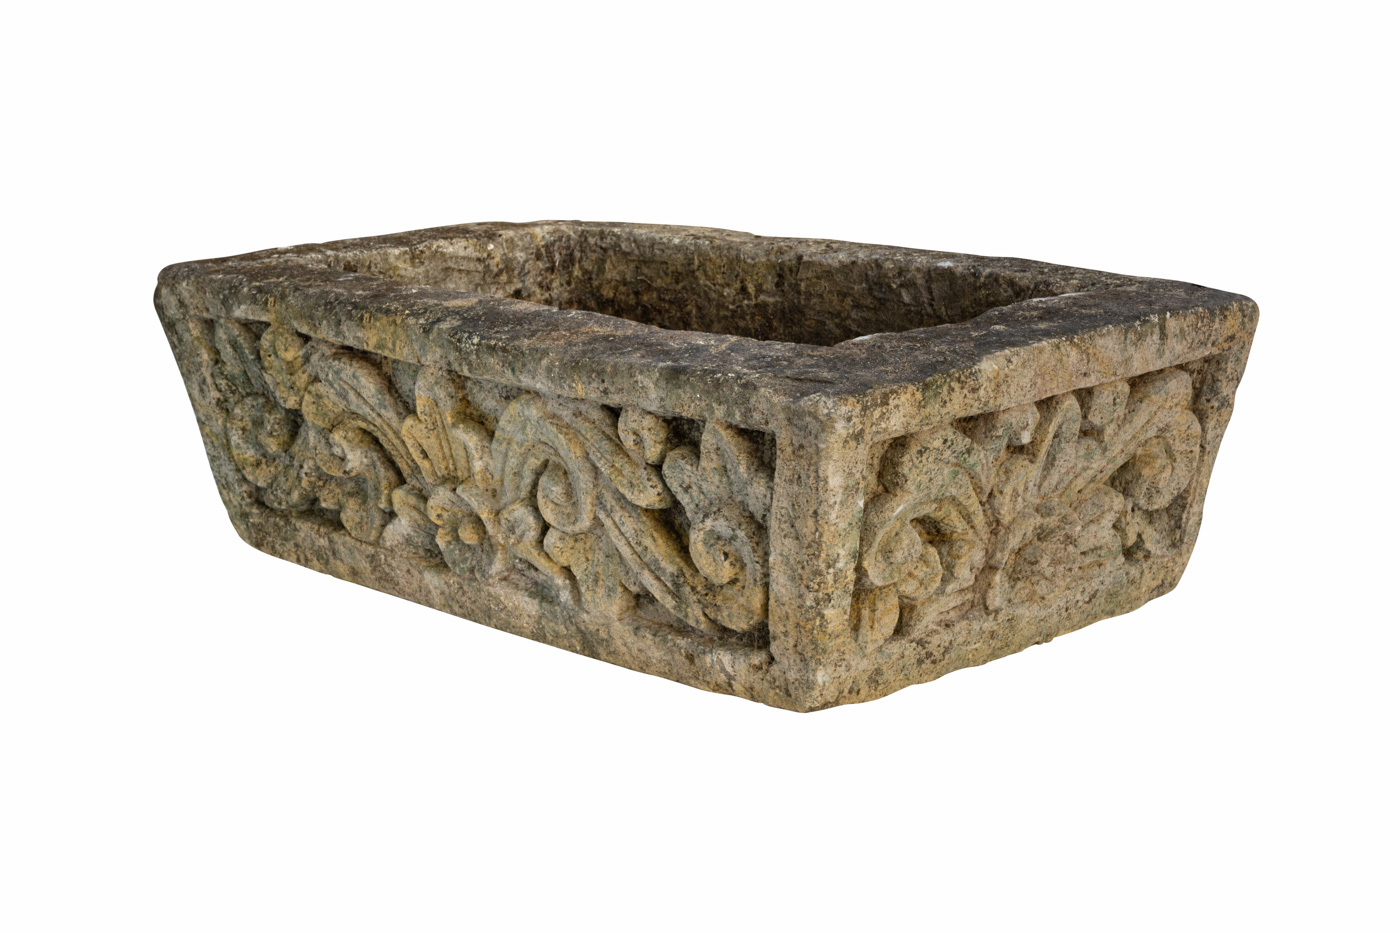 Flower pot carved in stone with floral design